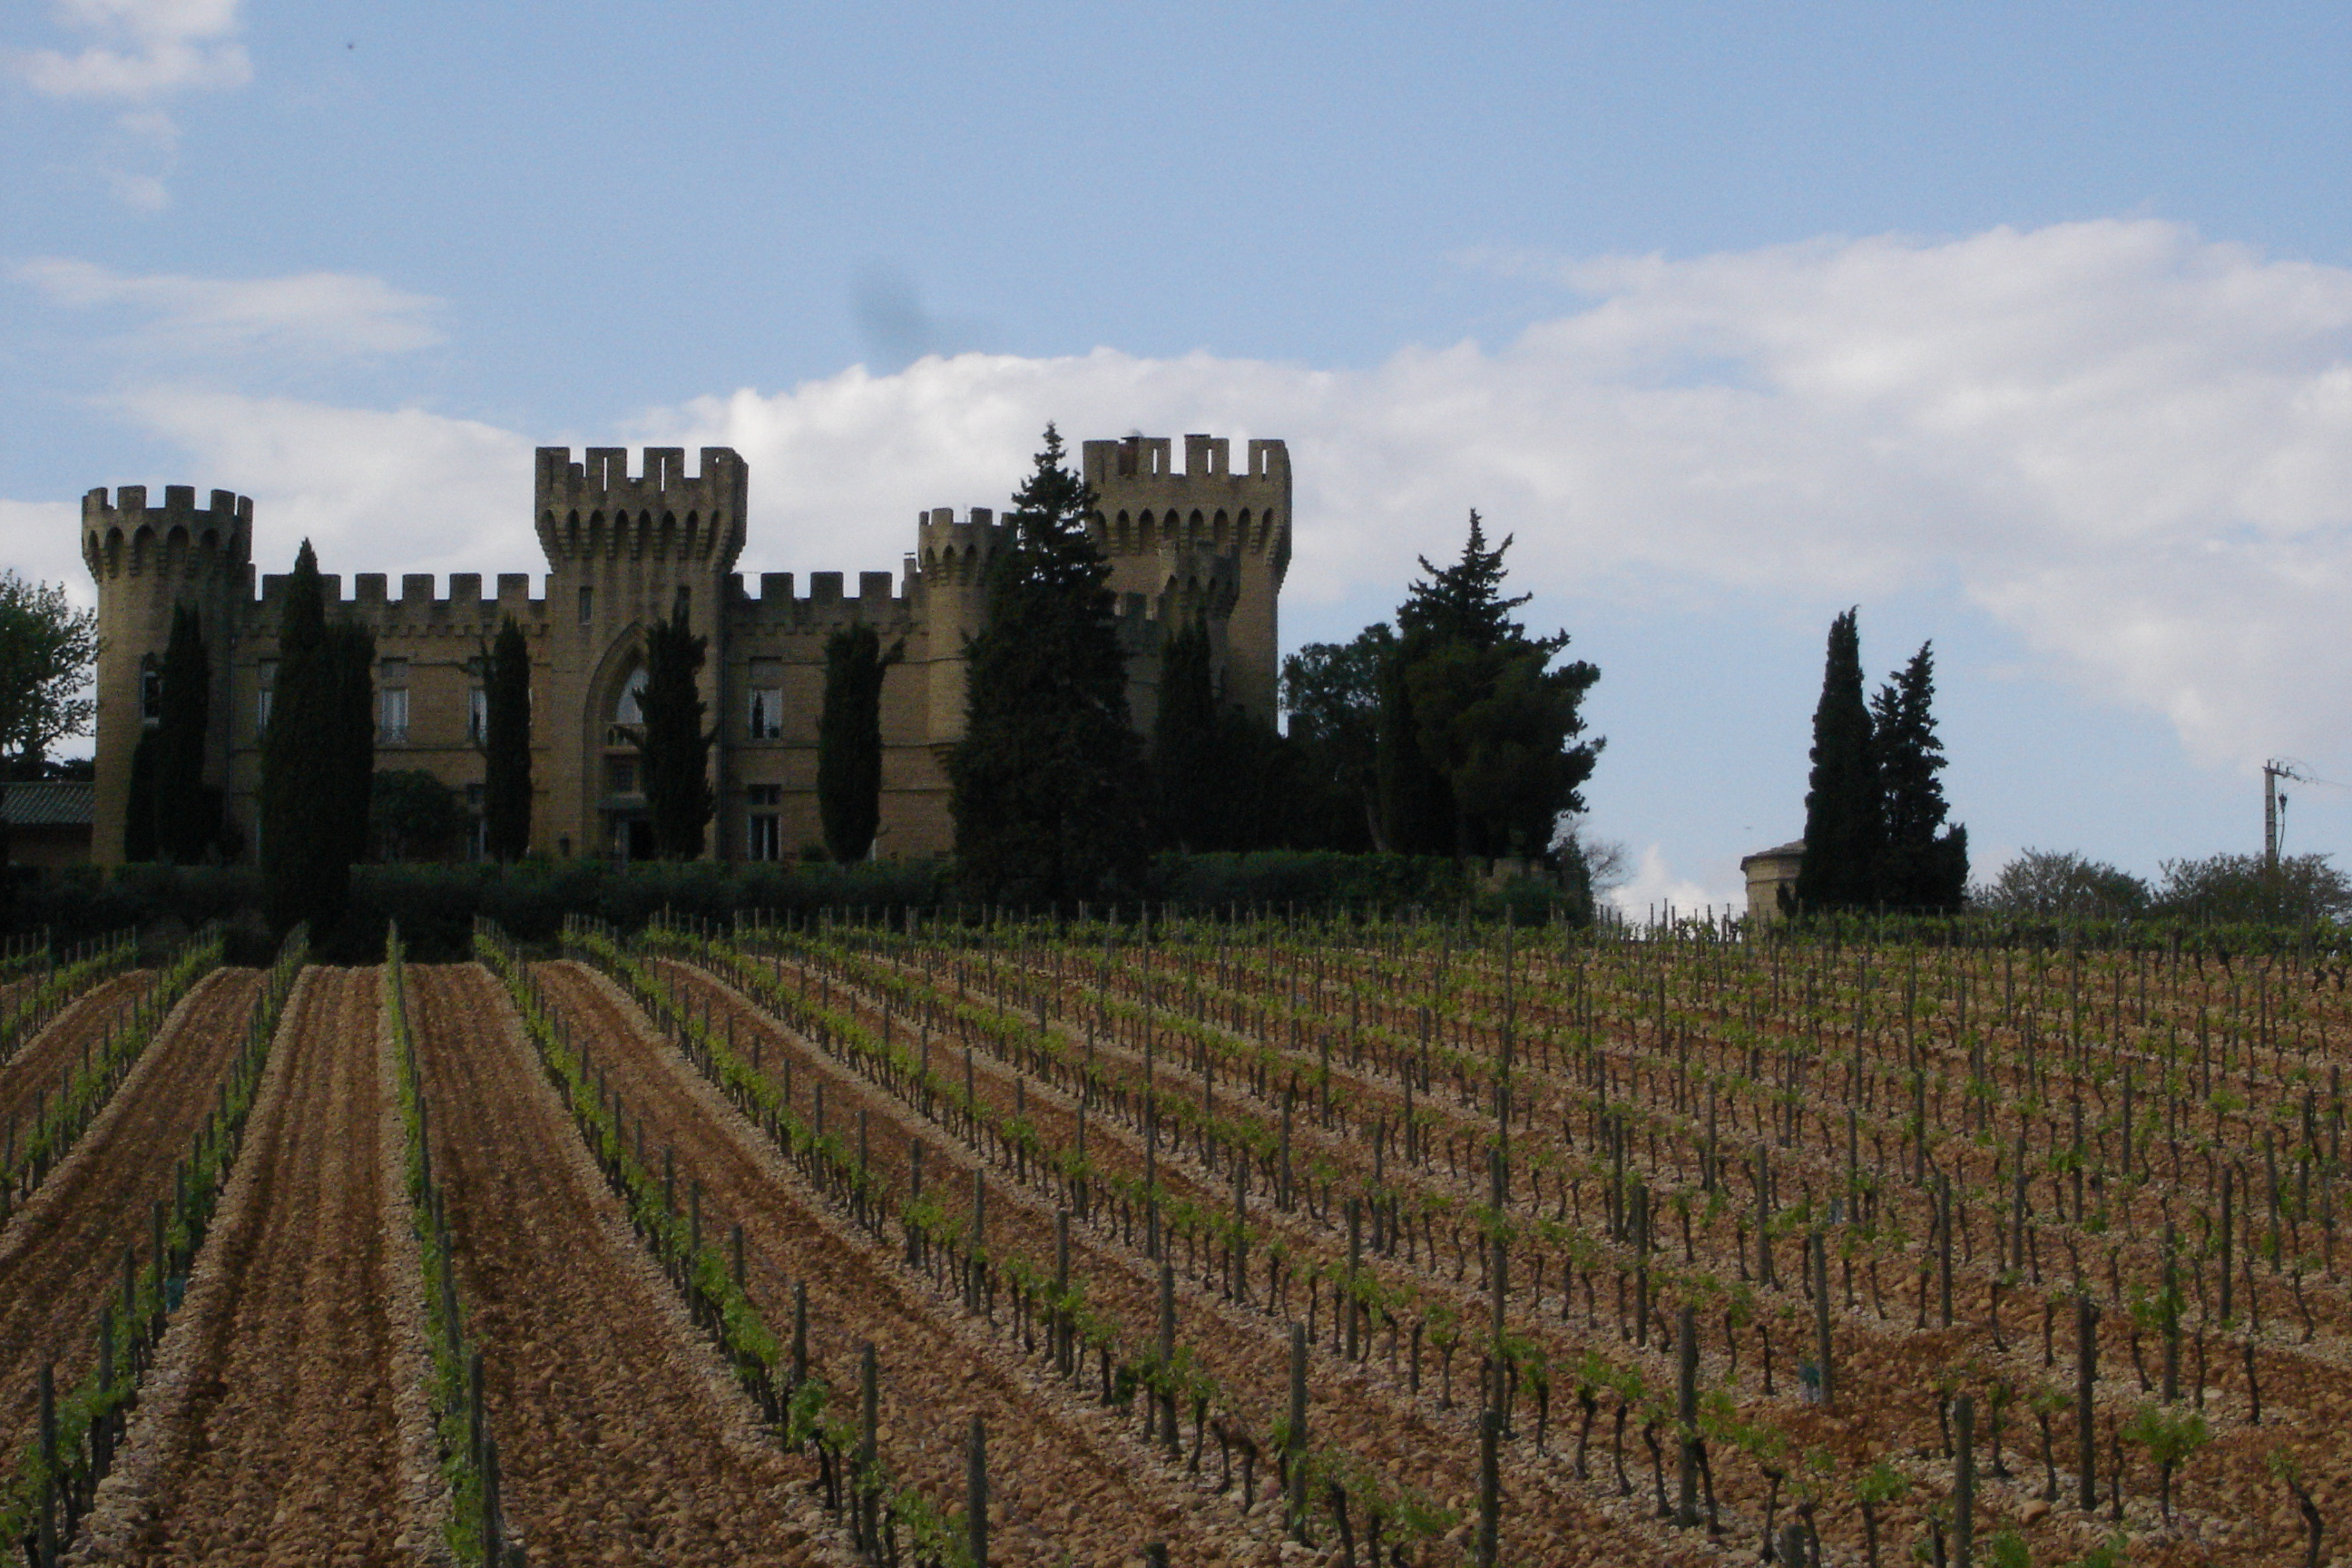 Chateauneuf_vineyard_%26_castle